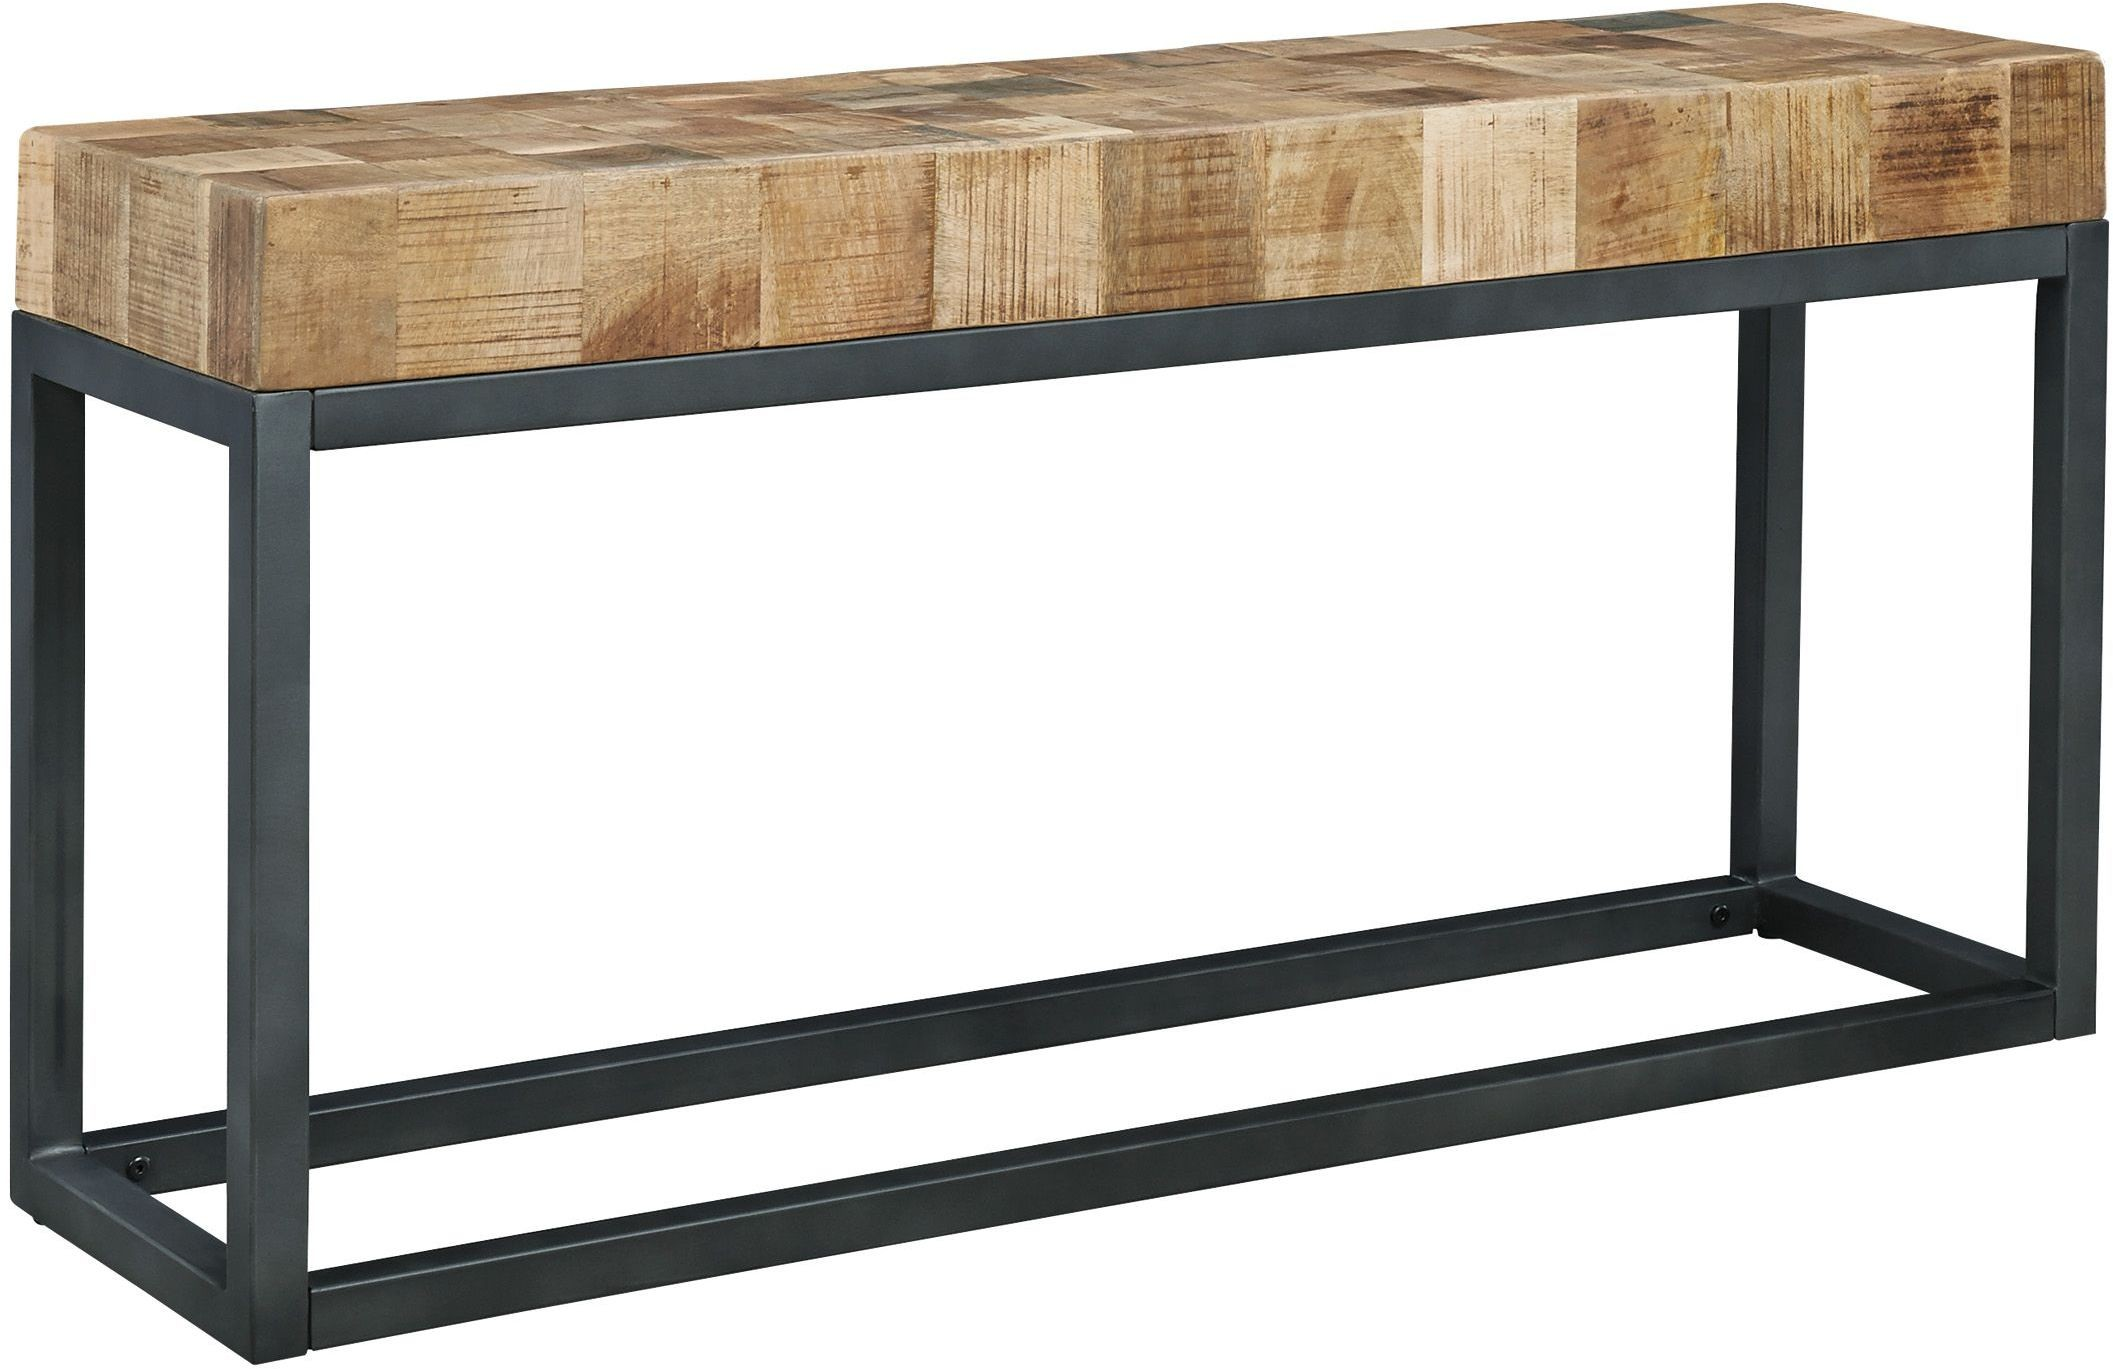 Prinico Two Tone Sofa Table from Ashley